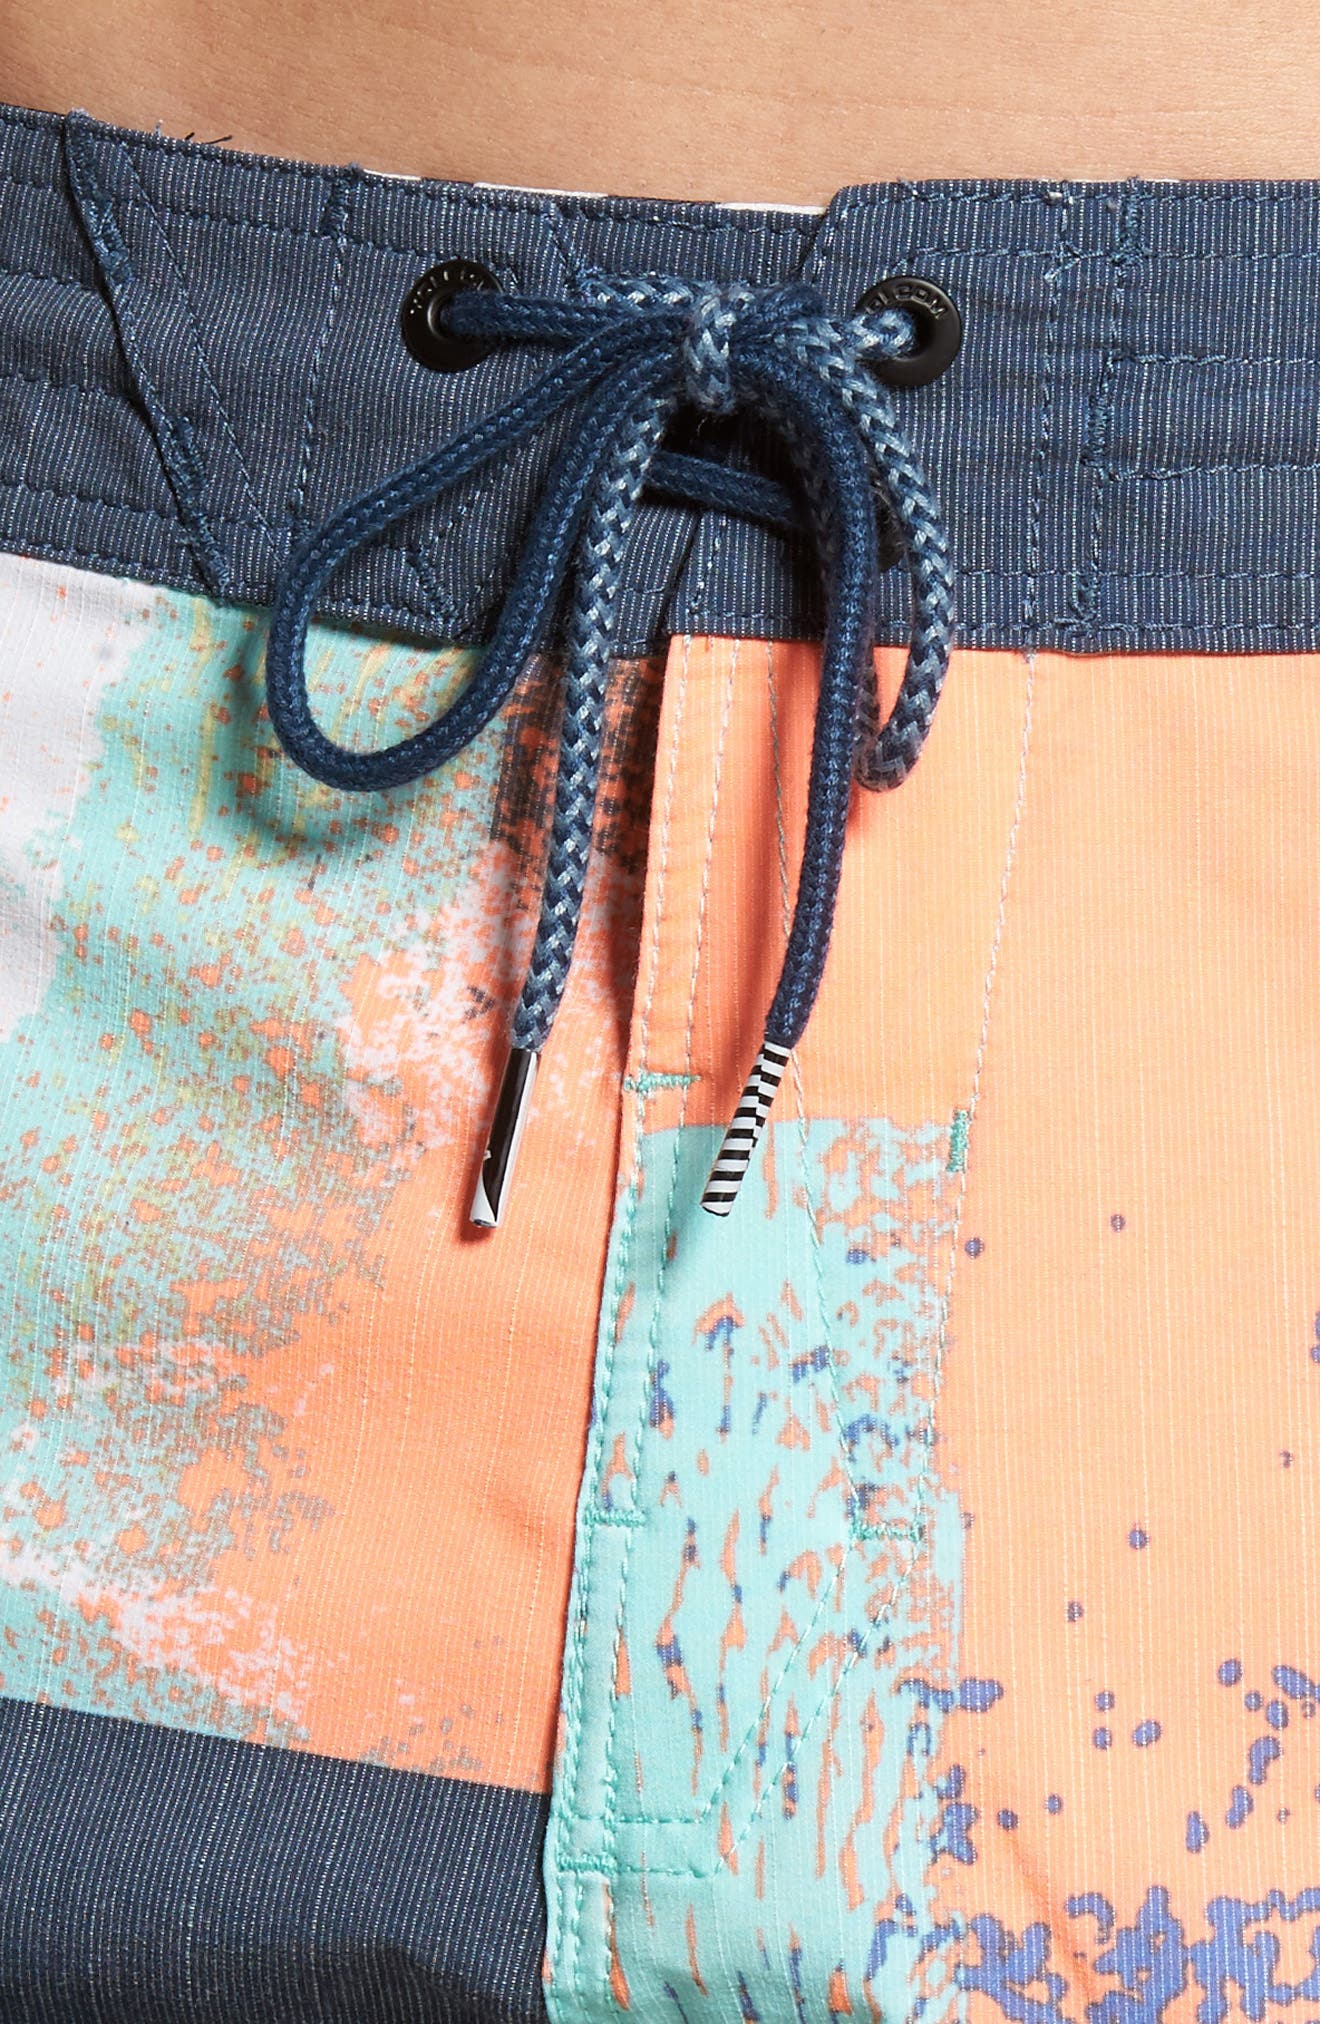 3 Quarta Board Shorts,                             Alternate thumbnail 4, color,                             Orange